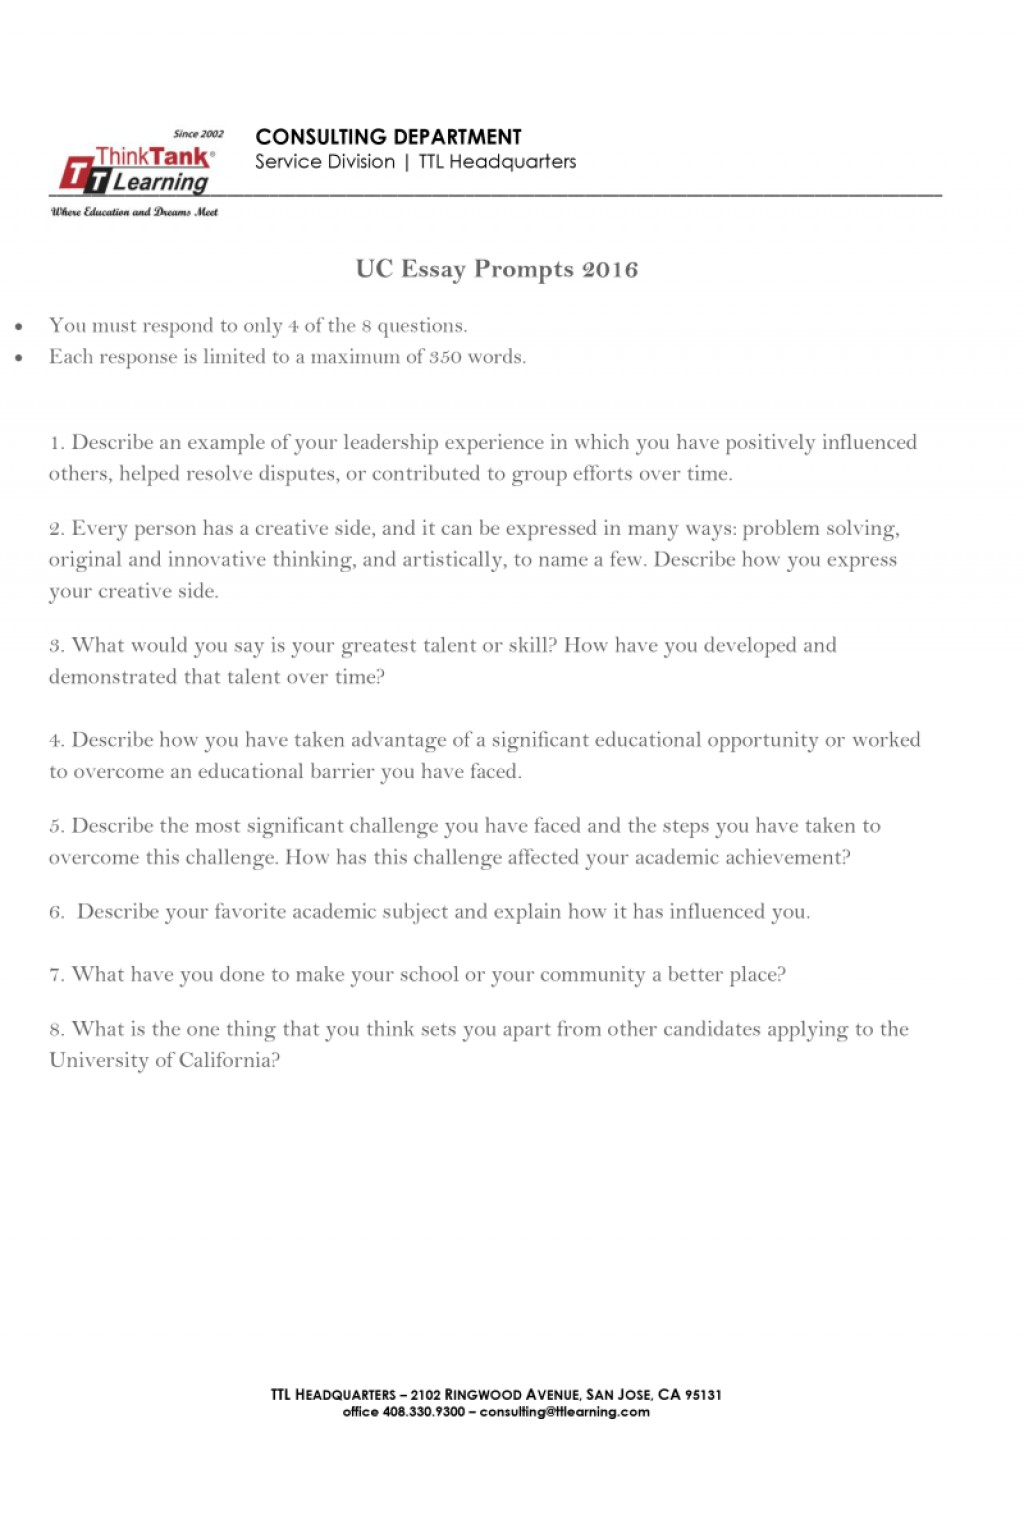 018 Apply Texas Essay Examples Example Prompts Poemsrom Co Uc College App 2 Application Berkeley Unusual Topic A 2016 C Large